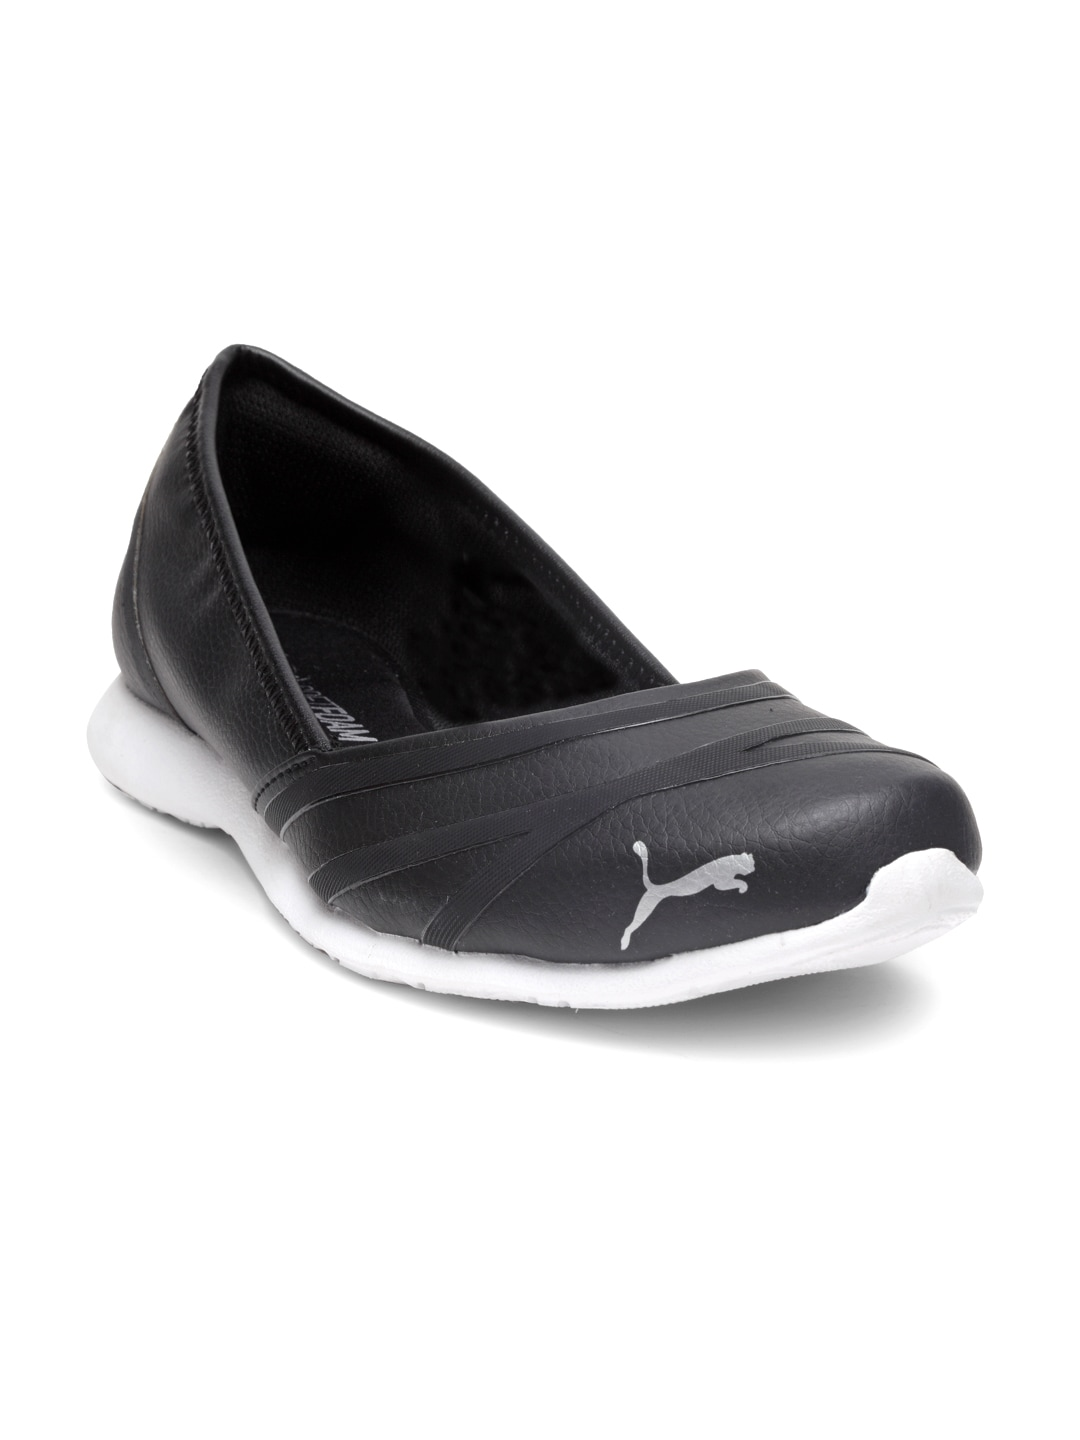 f4955a7e0d Puma Women Black Vega Ballet SL IDP Solid Synthetic Ballerinas